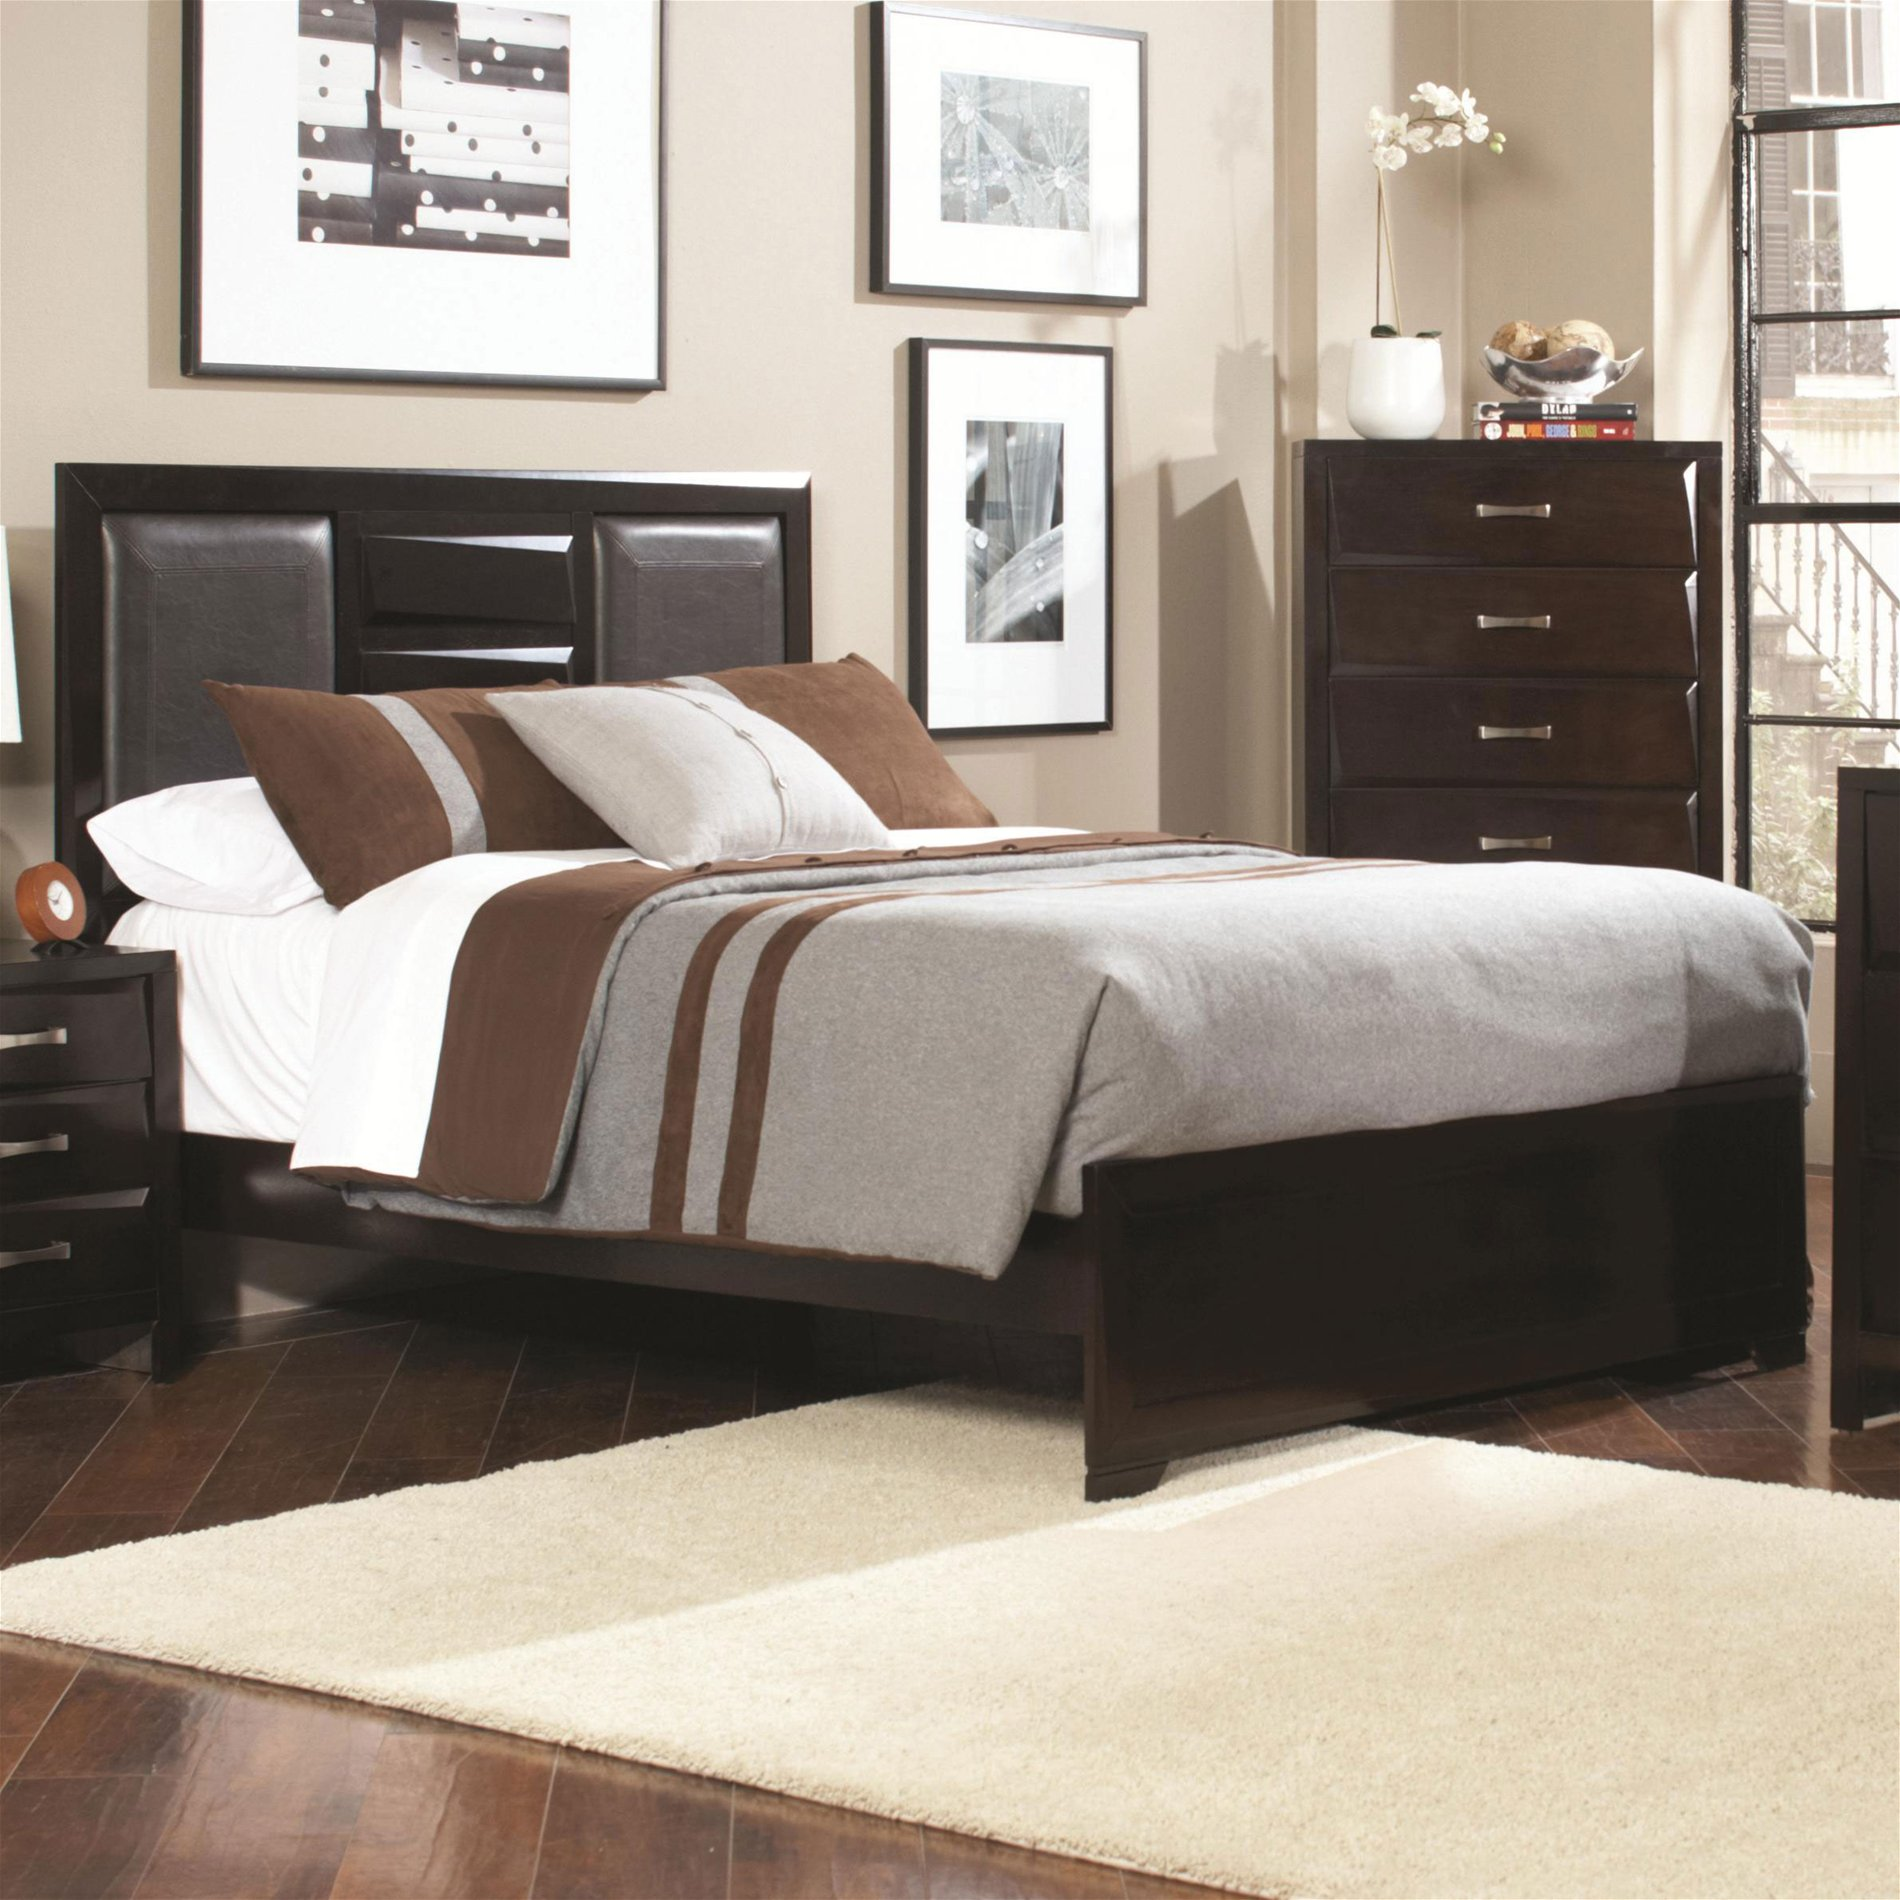 Coaster Home KE Palmetto King Bed with Faux Leather